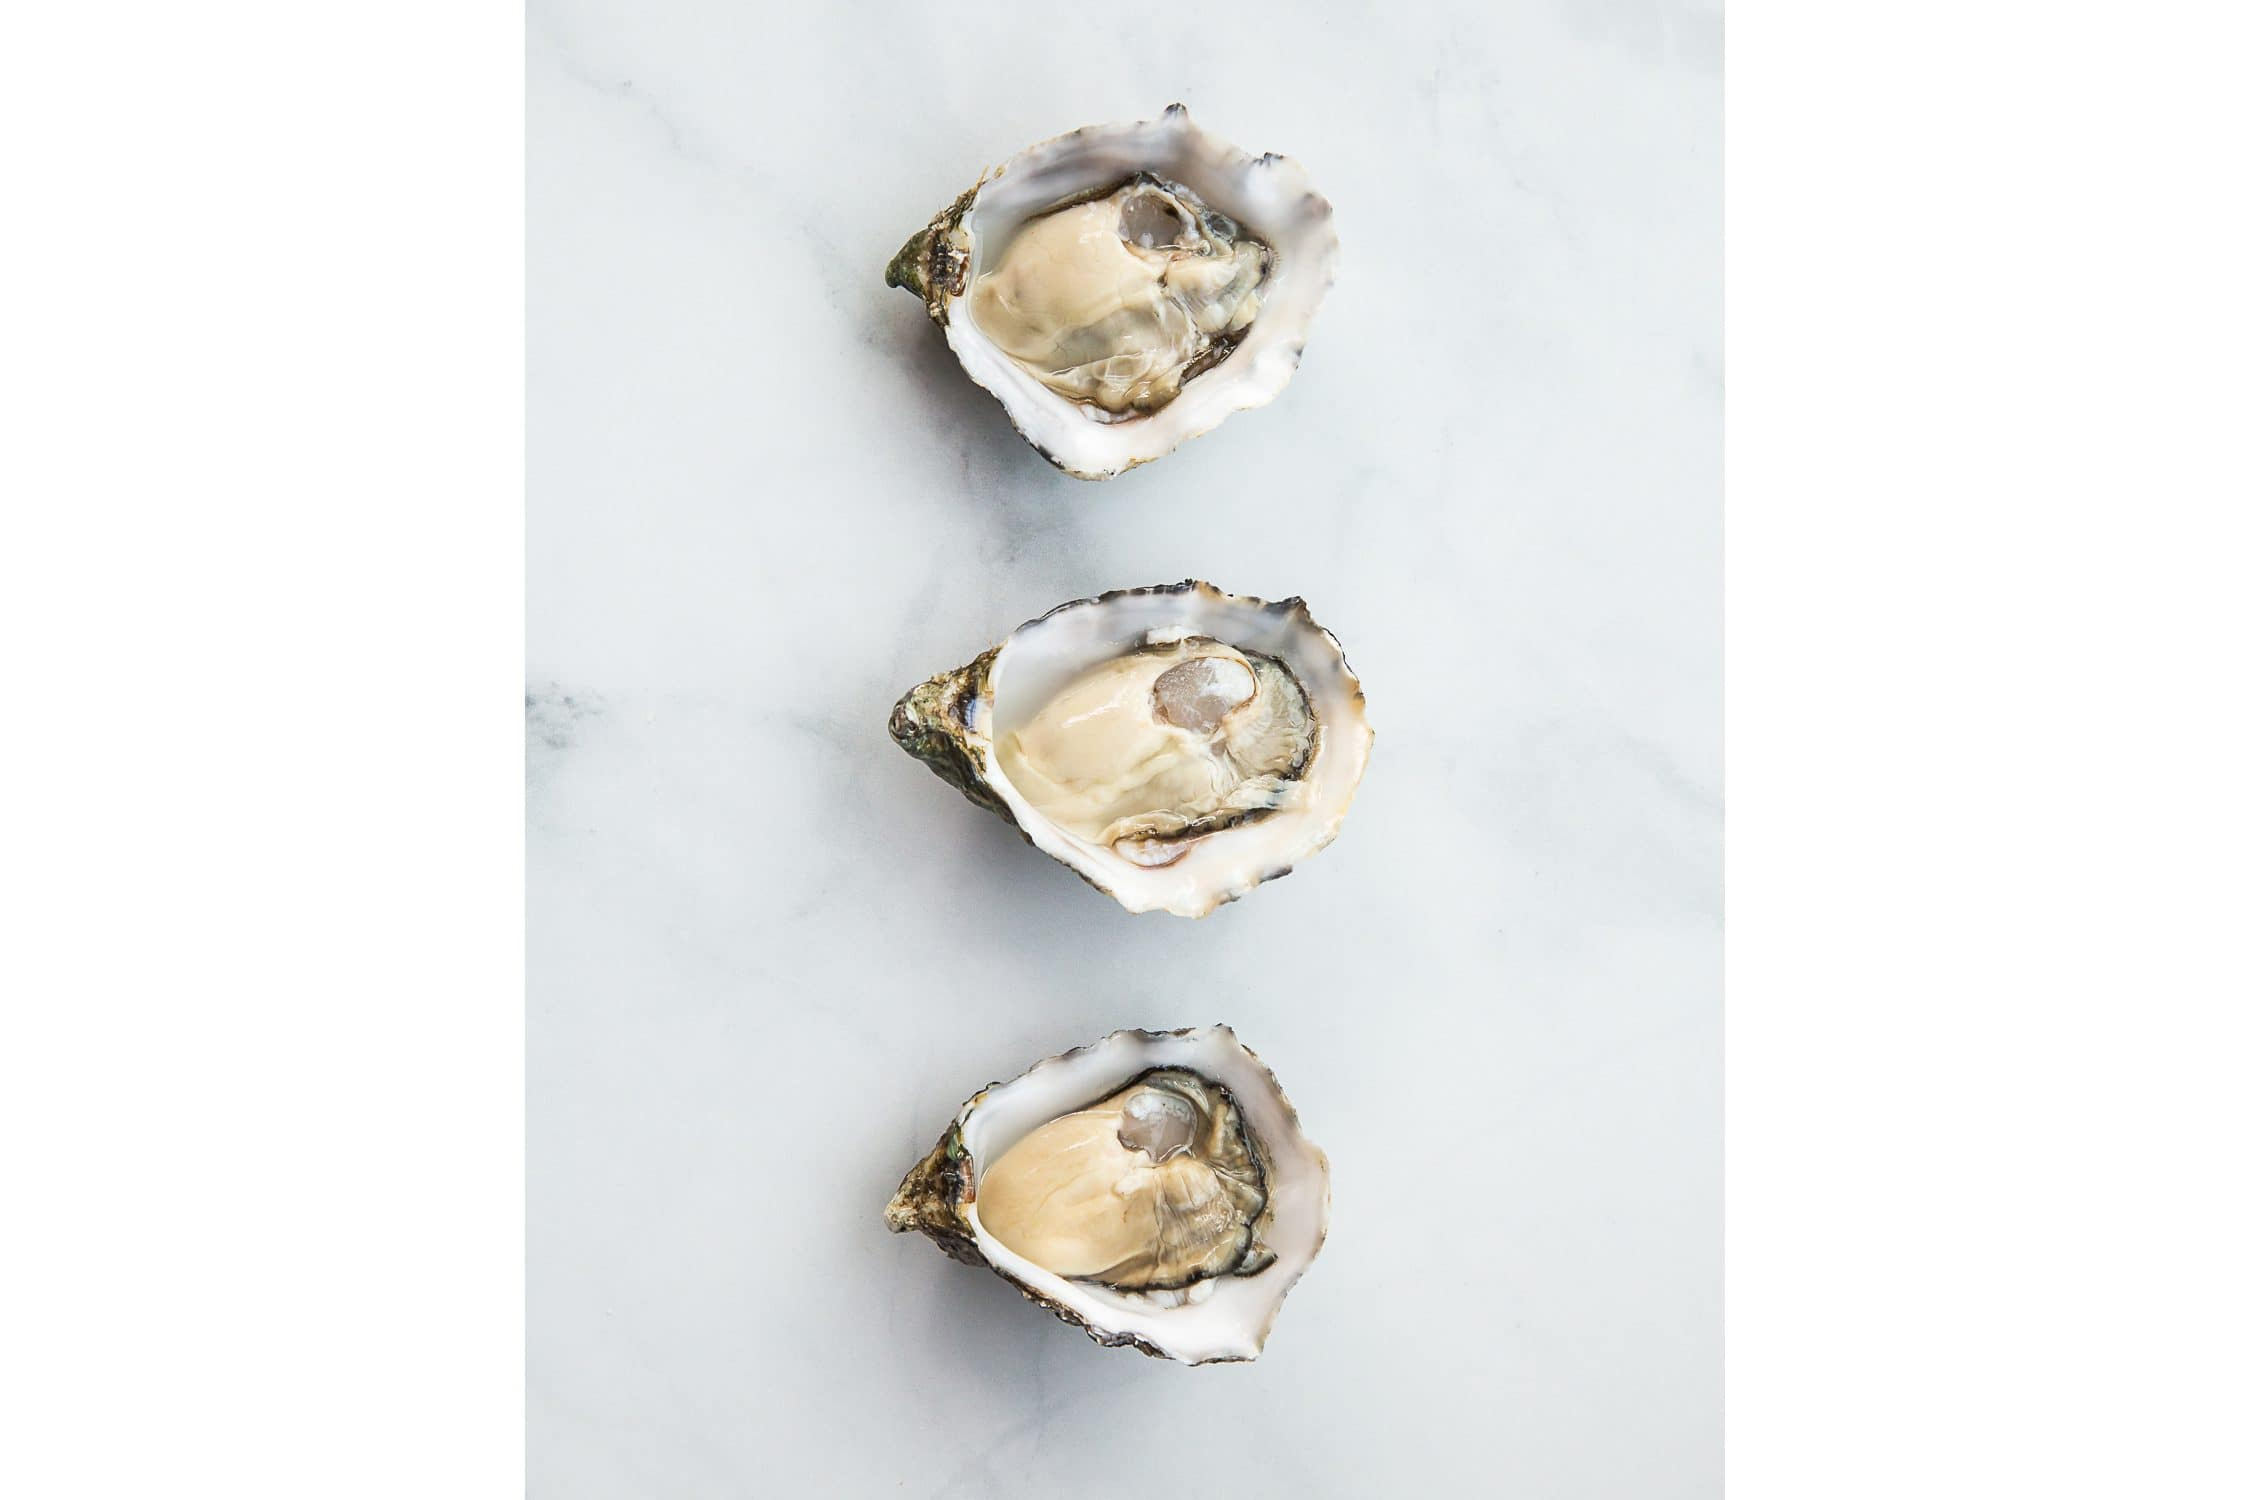 Oysters at The Bay, Dubai